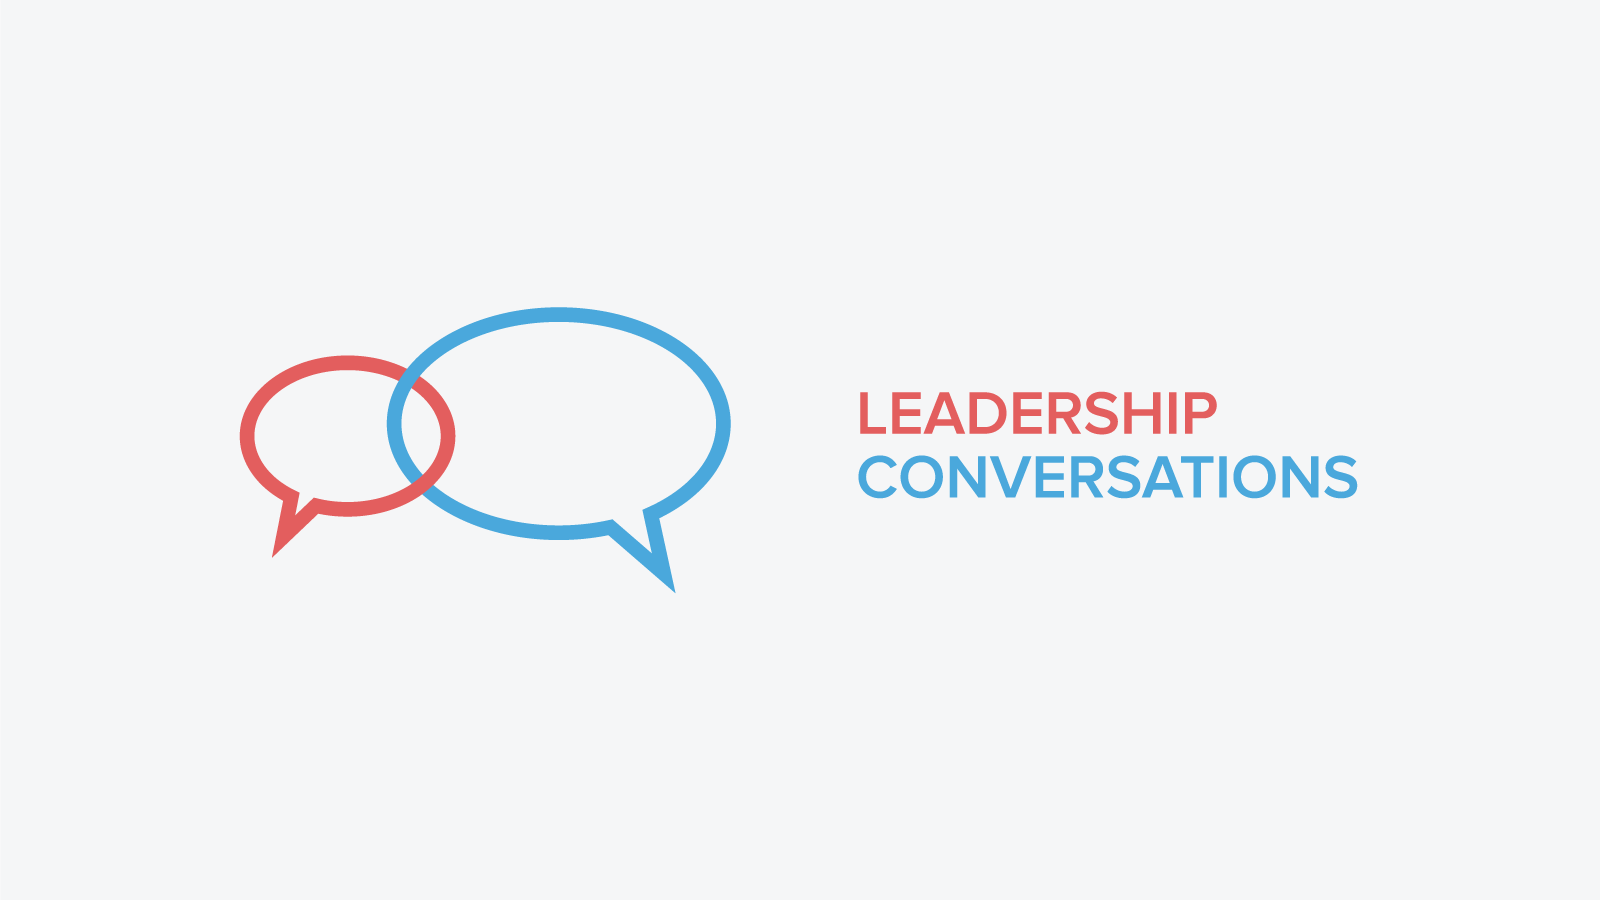 leadershipConversations1600x900.png